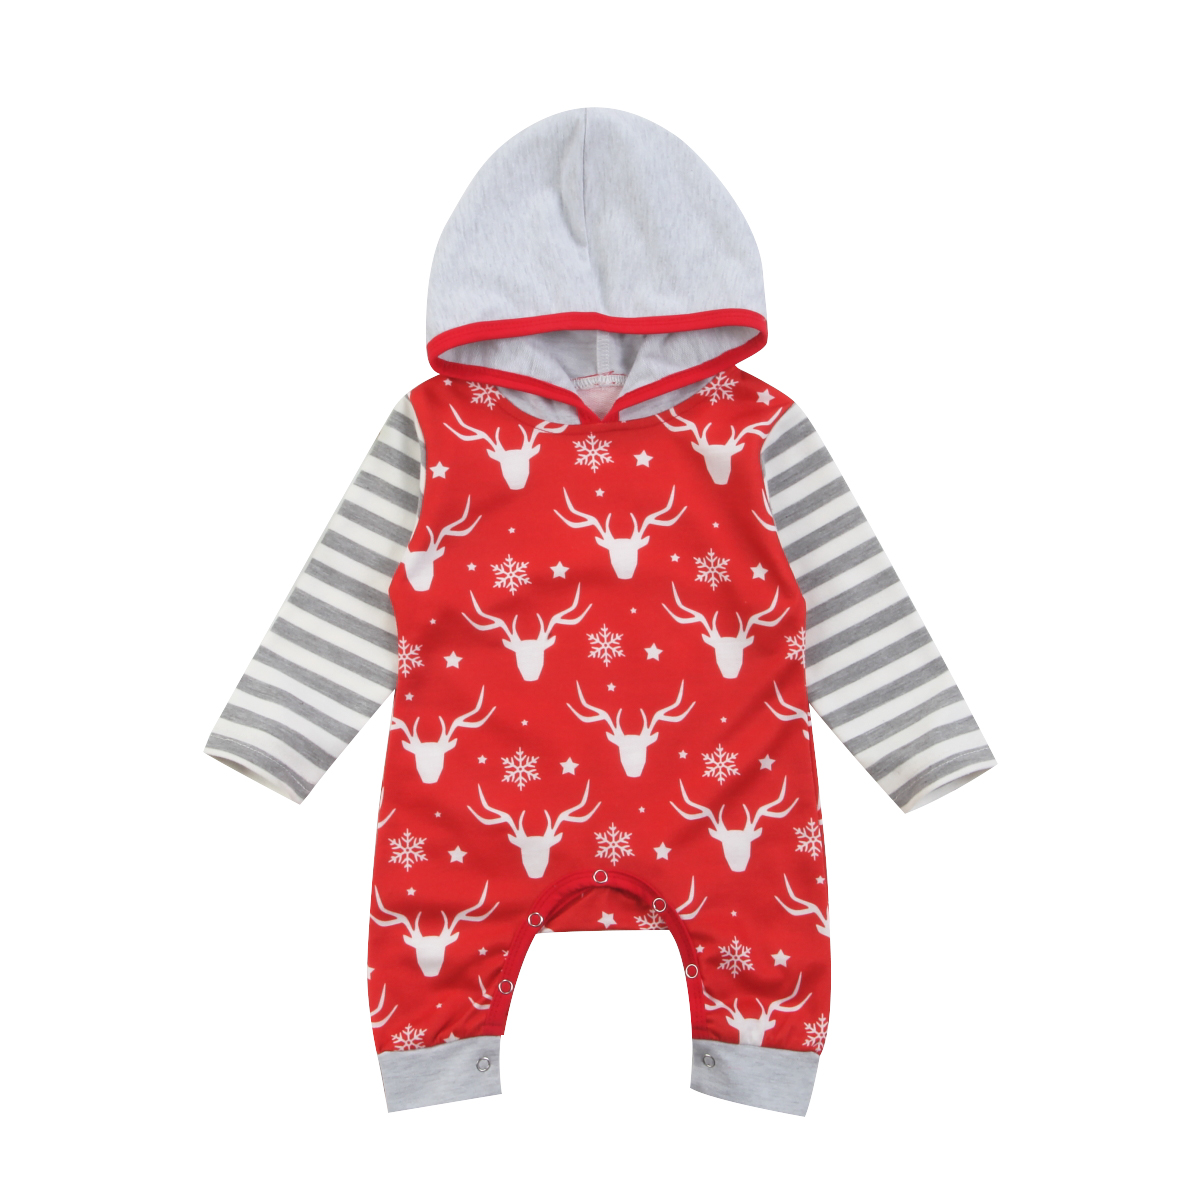 Newborn Baby Girls Boys Hooded Romper Jumpsuit Christmas Outfits 0-24M pudcoco 2018 Newborn Baby Boy Girl deer romper цена